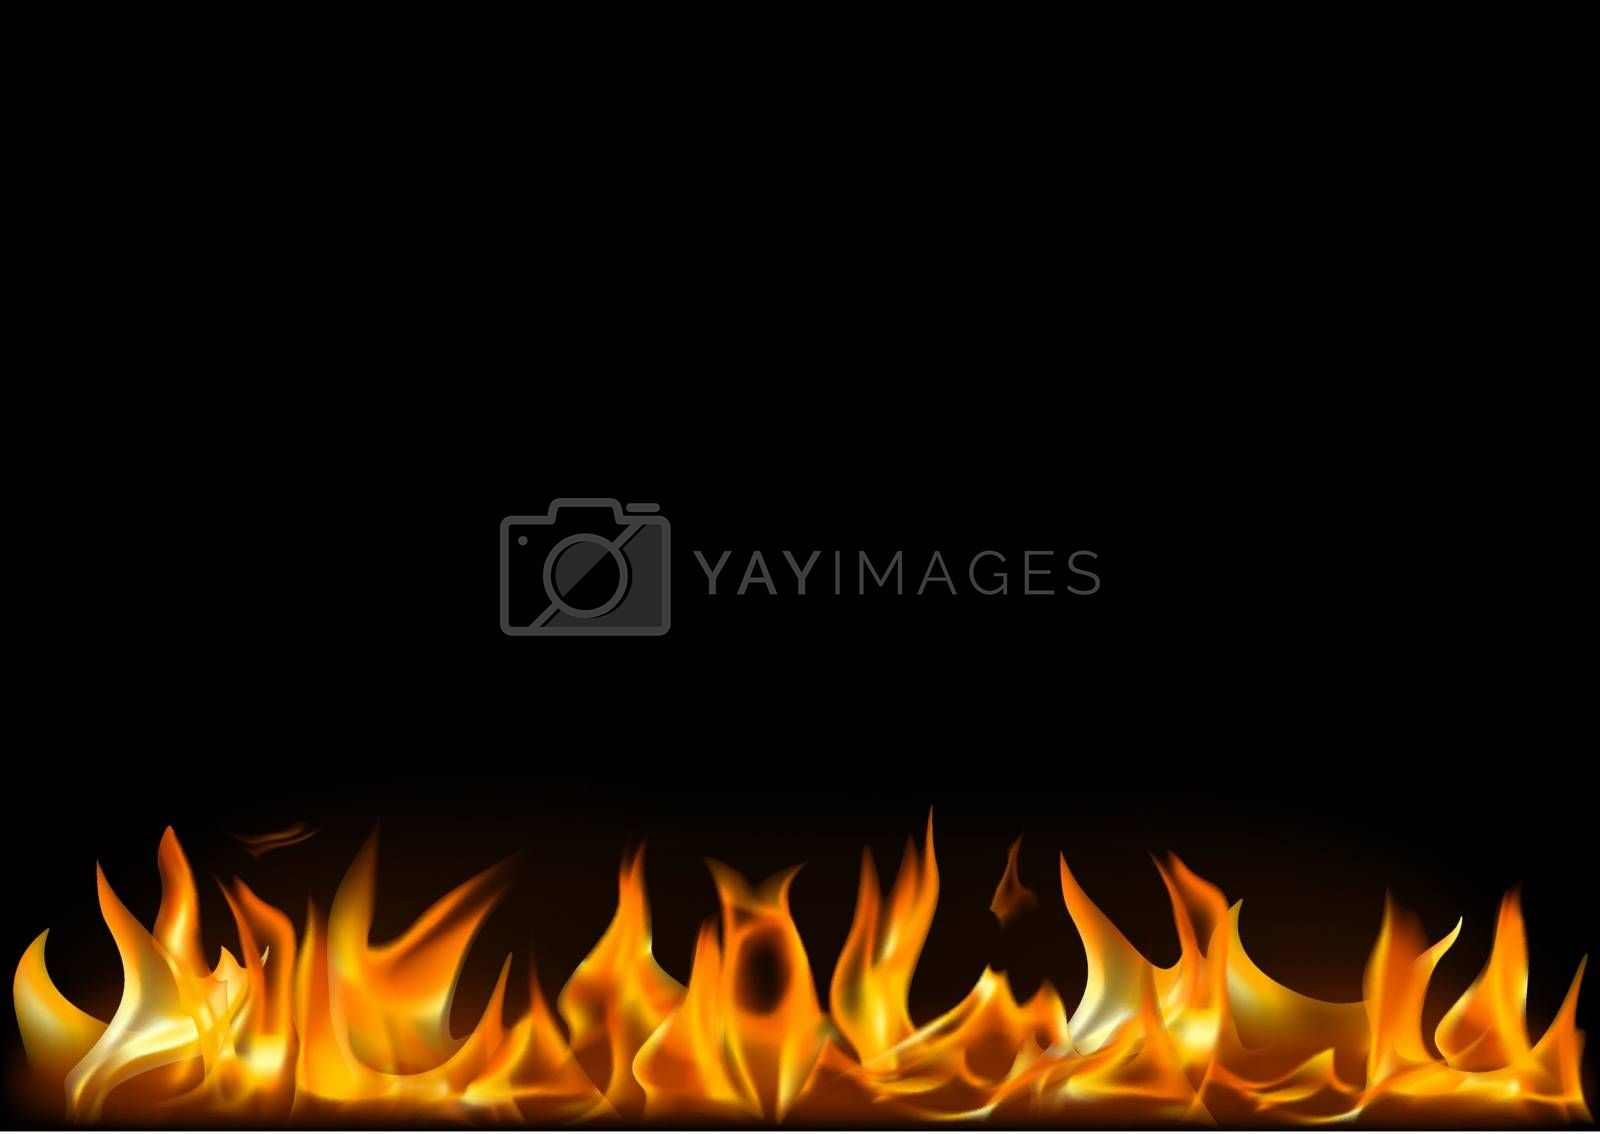 Realistic Fire Flames Background by illustratorCZ